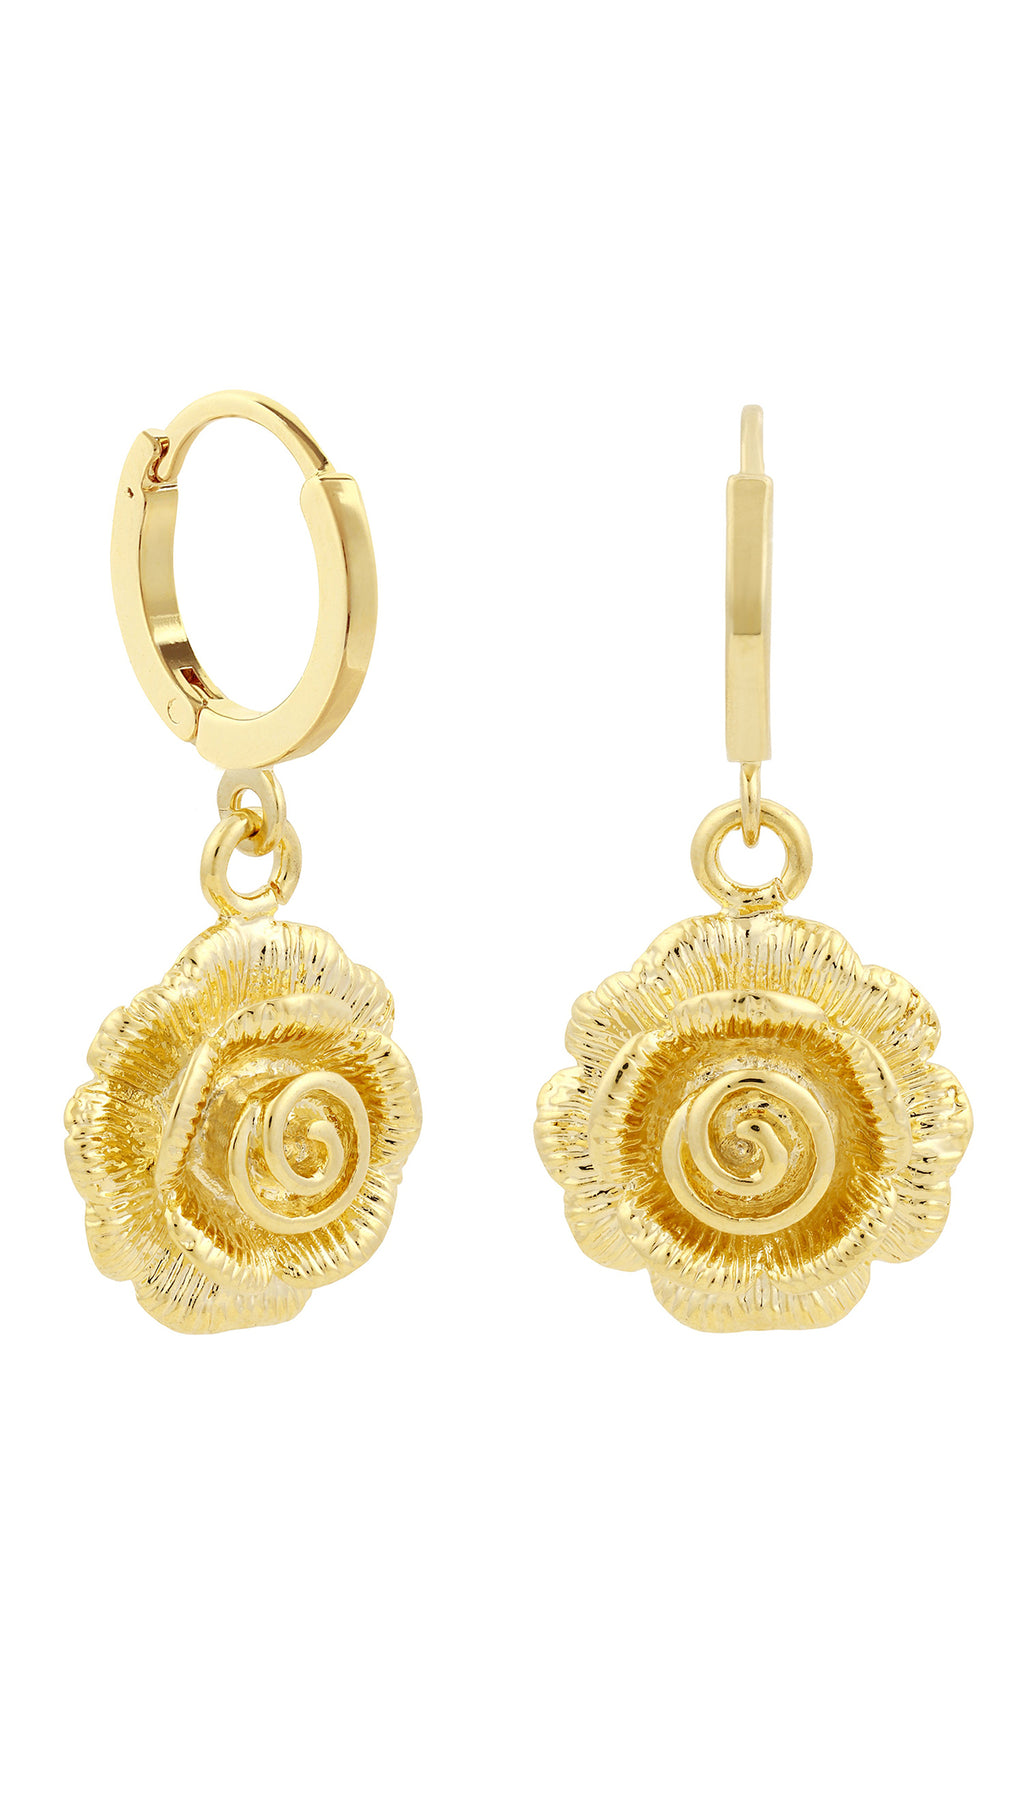 Five and Two Jamie earrings cameo nouveau